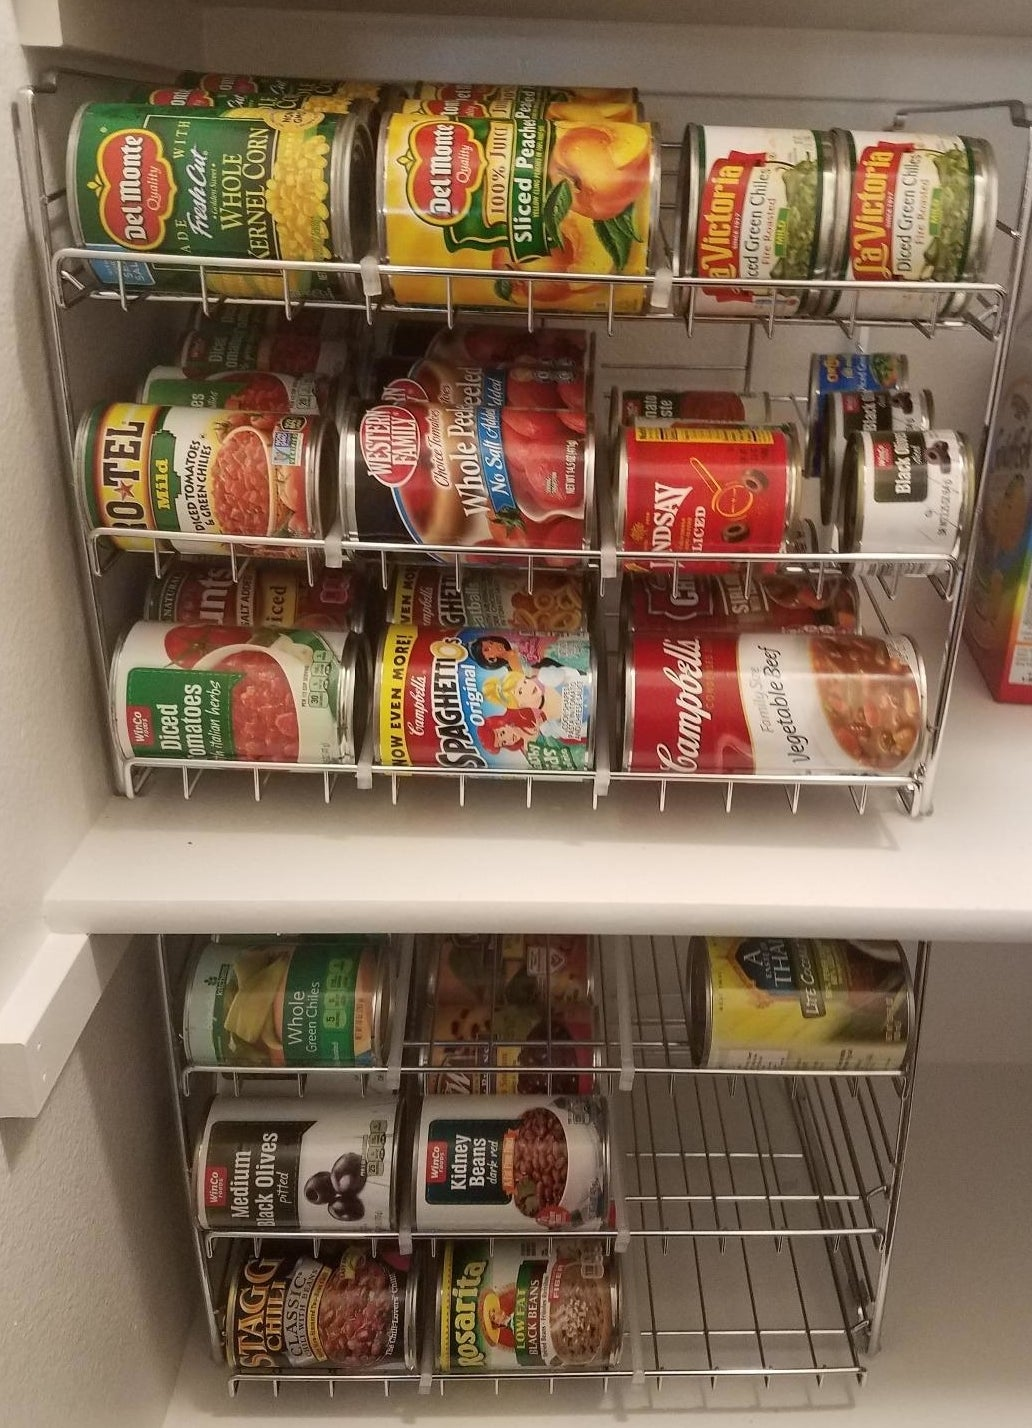 Reviewer's pantry with two of the metal wire racks, which are full of cans